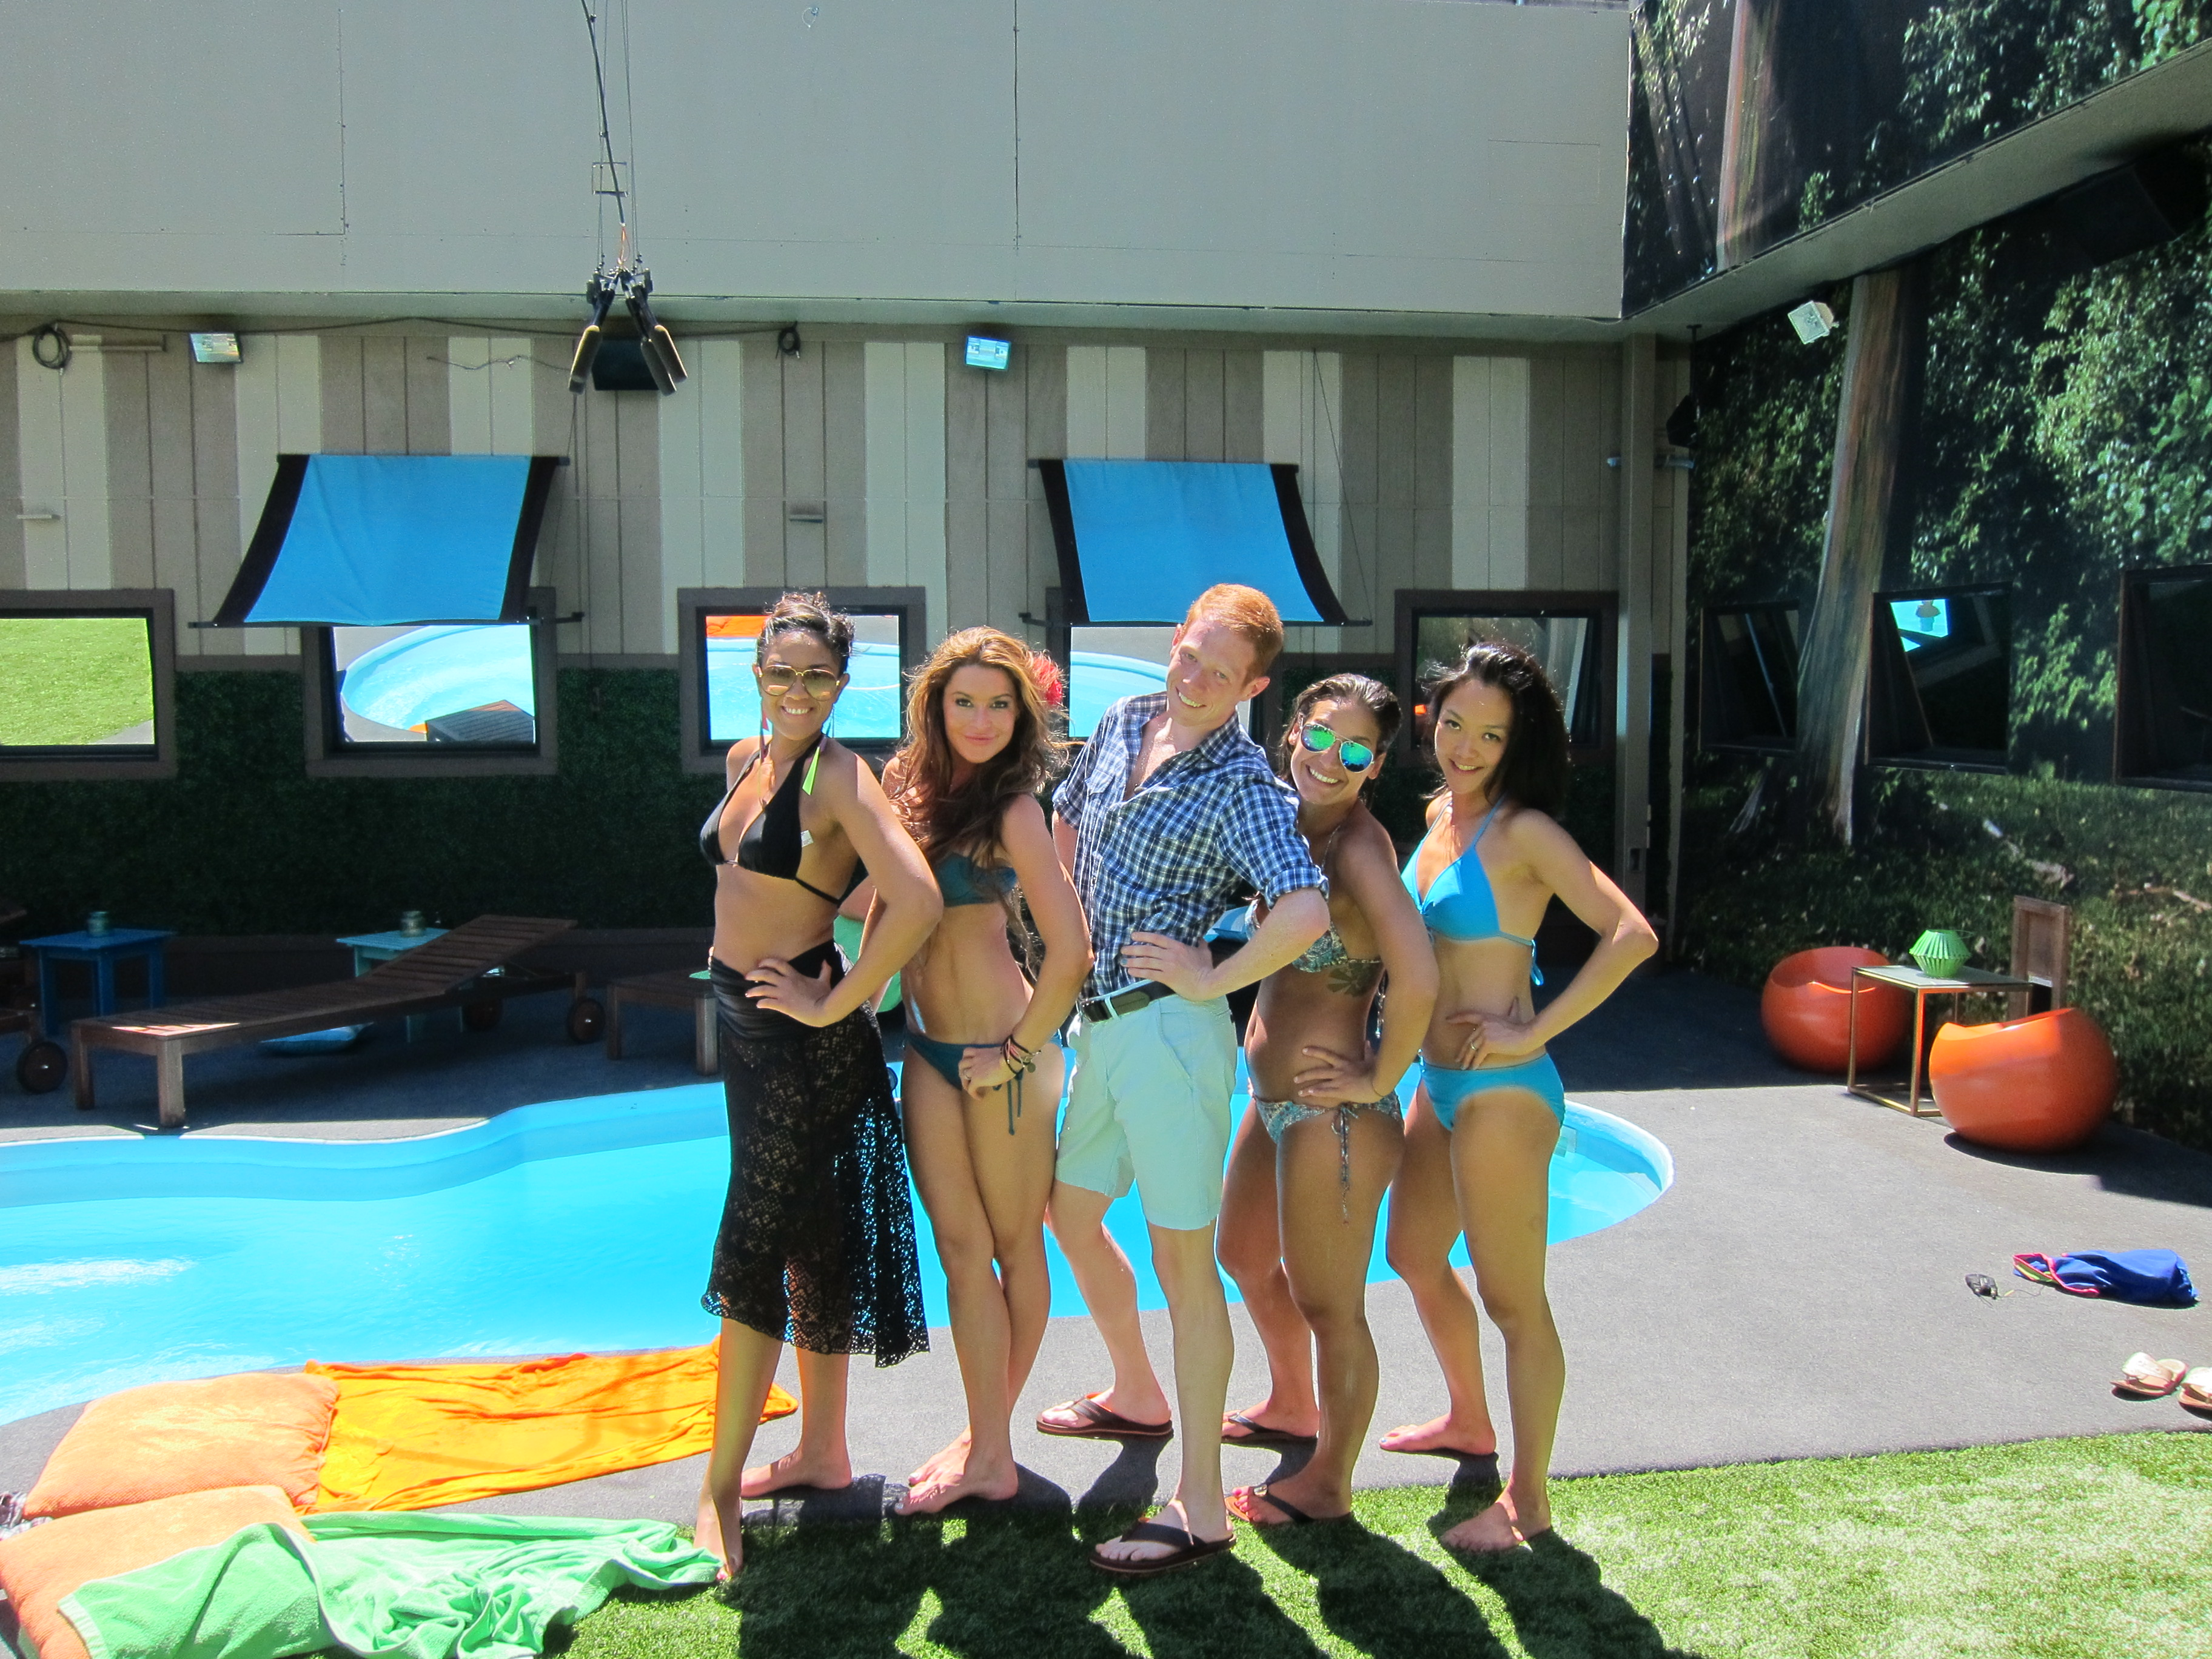 Candice, Elissa, Andy, Jessie and Helen